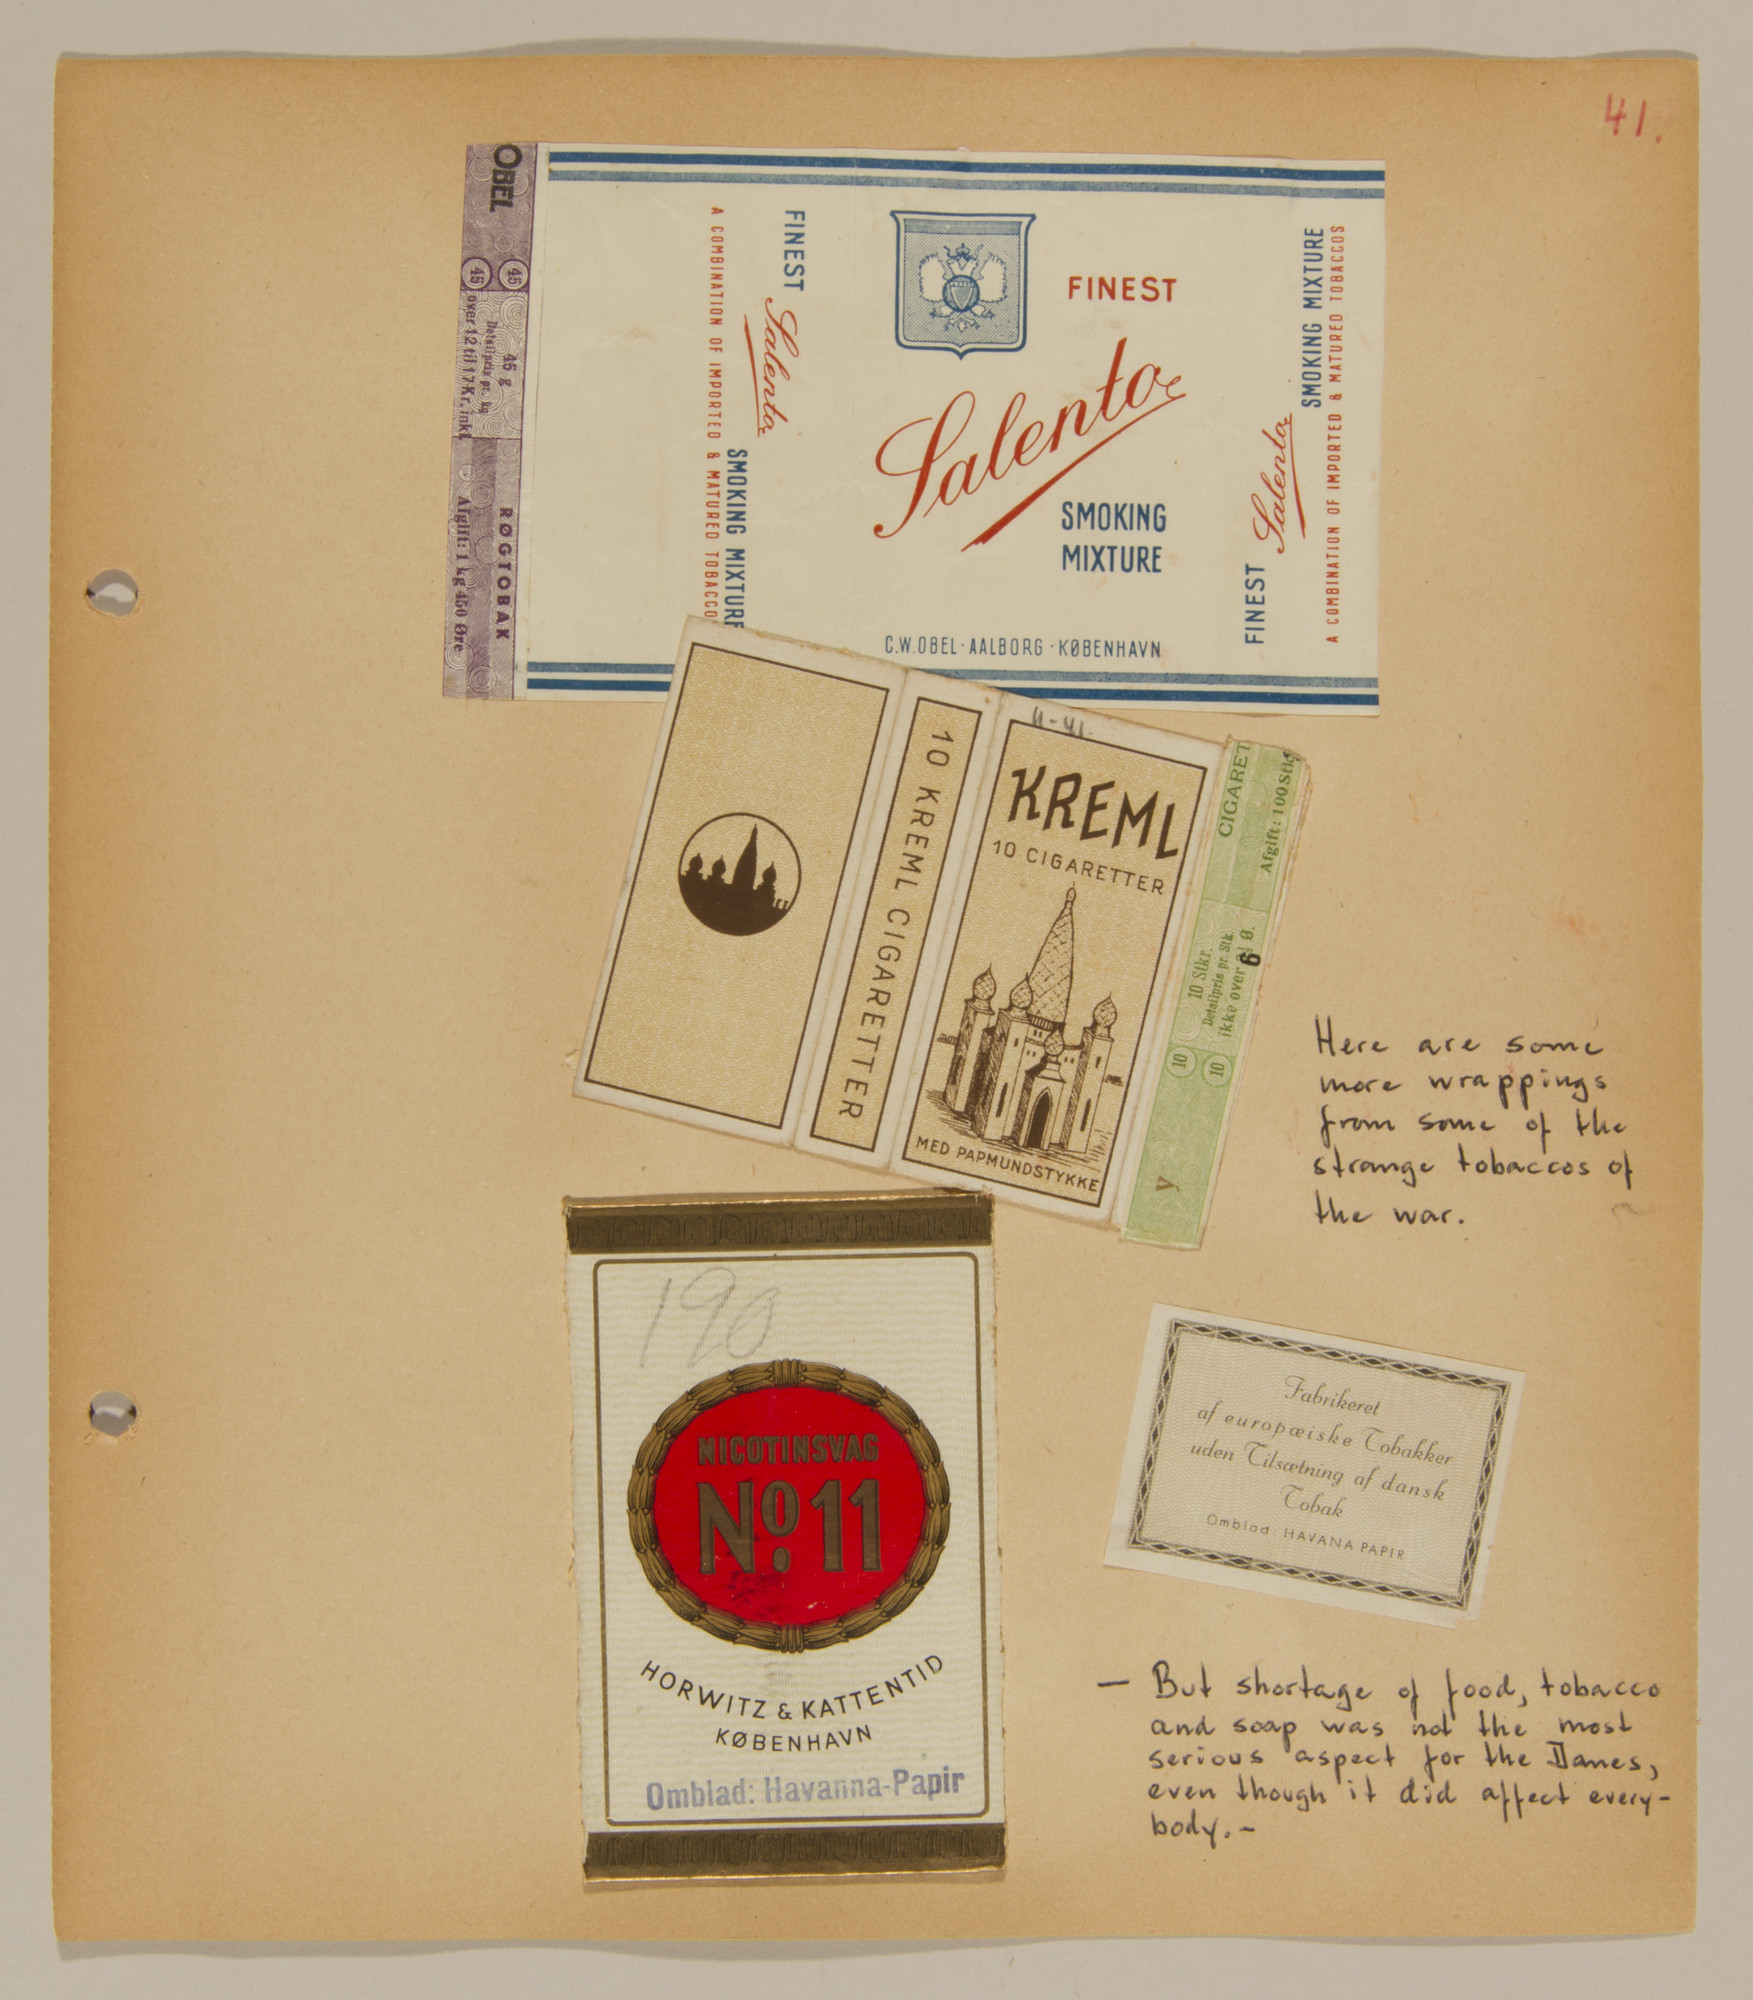 Page from volume one of a set of scrapbooks compiled by Bjorn Sibbern, a Danish policeman and resistance member, documenting the German occupation of Denmark.  Page contains labels to cigarette packages.